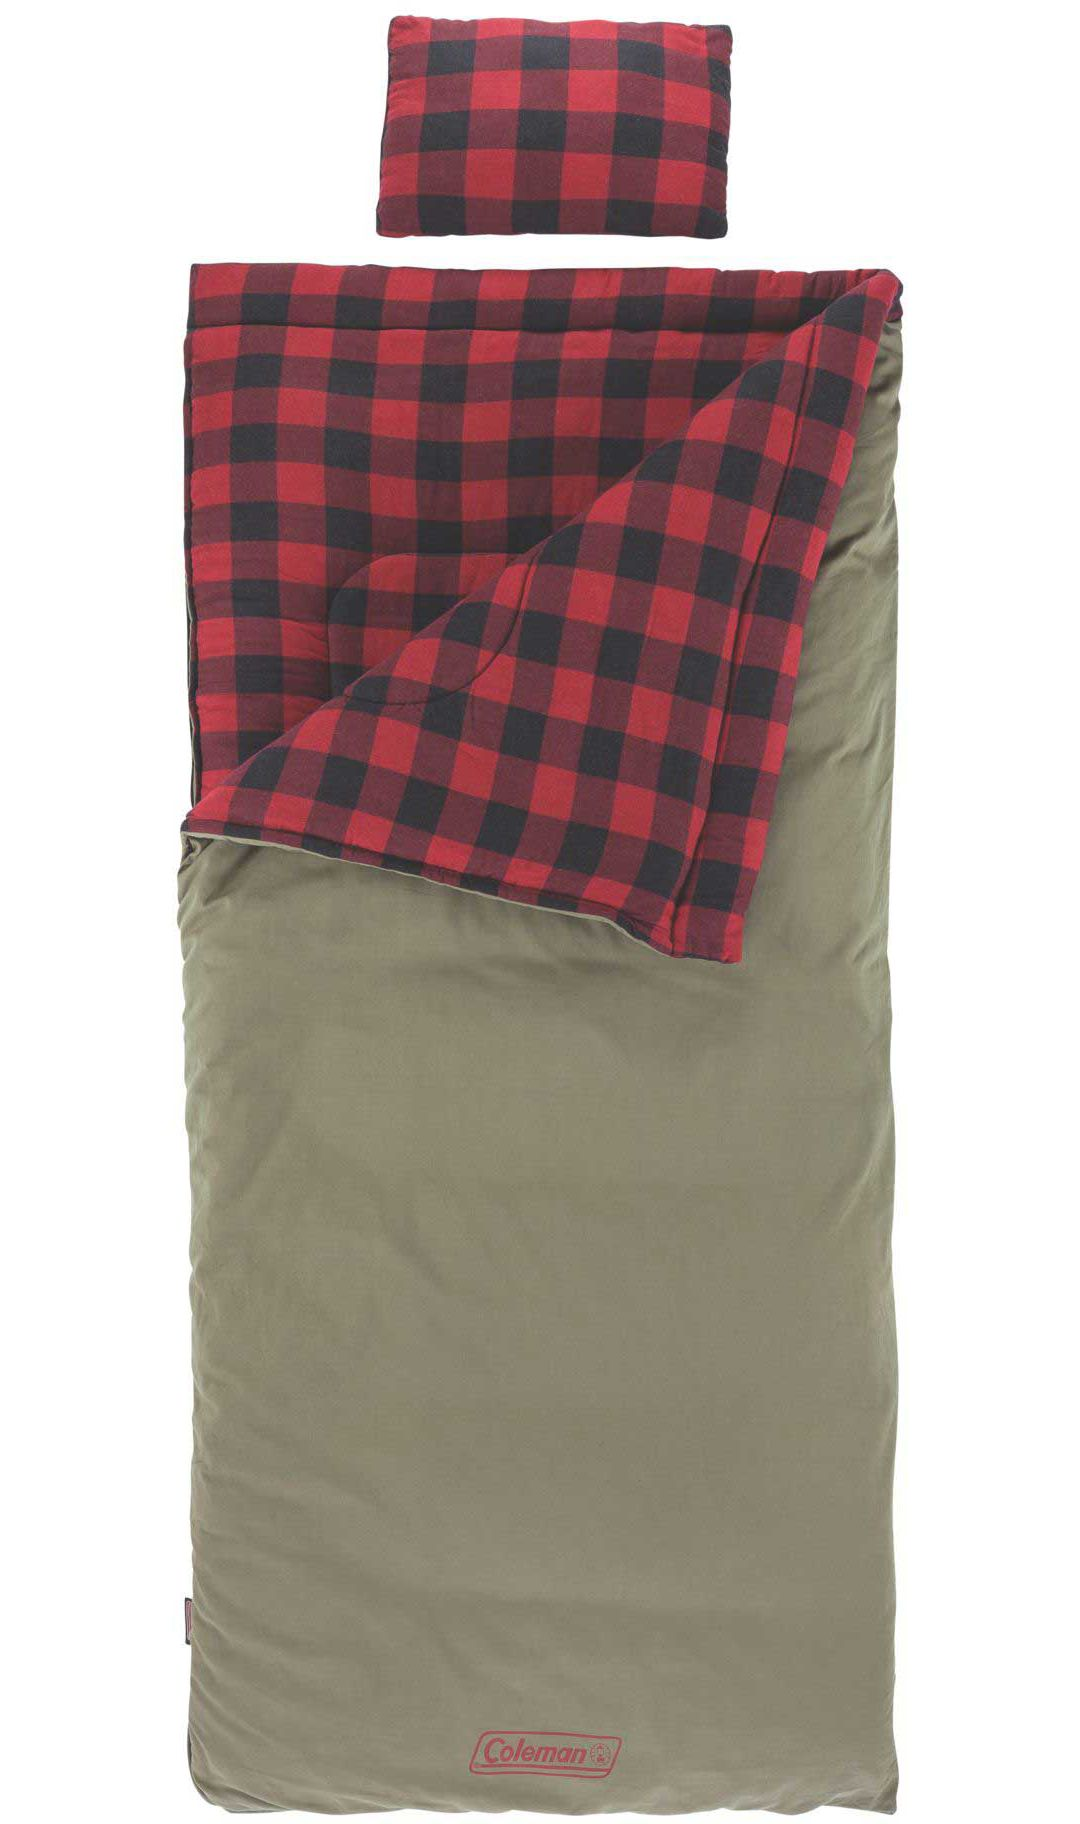 sneakers for cheap 56dd7 e7062 Coleman Big & Tall Big Game 0° Sleeping Bag with Pillow